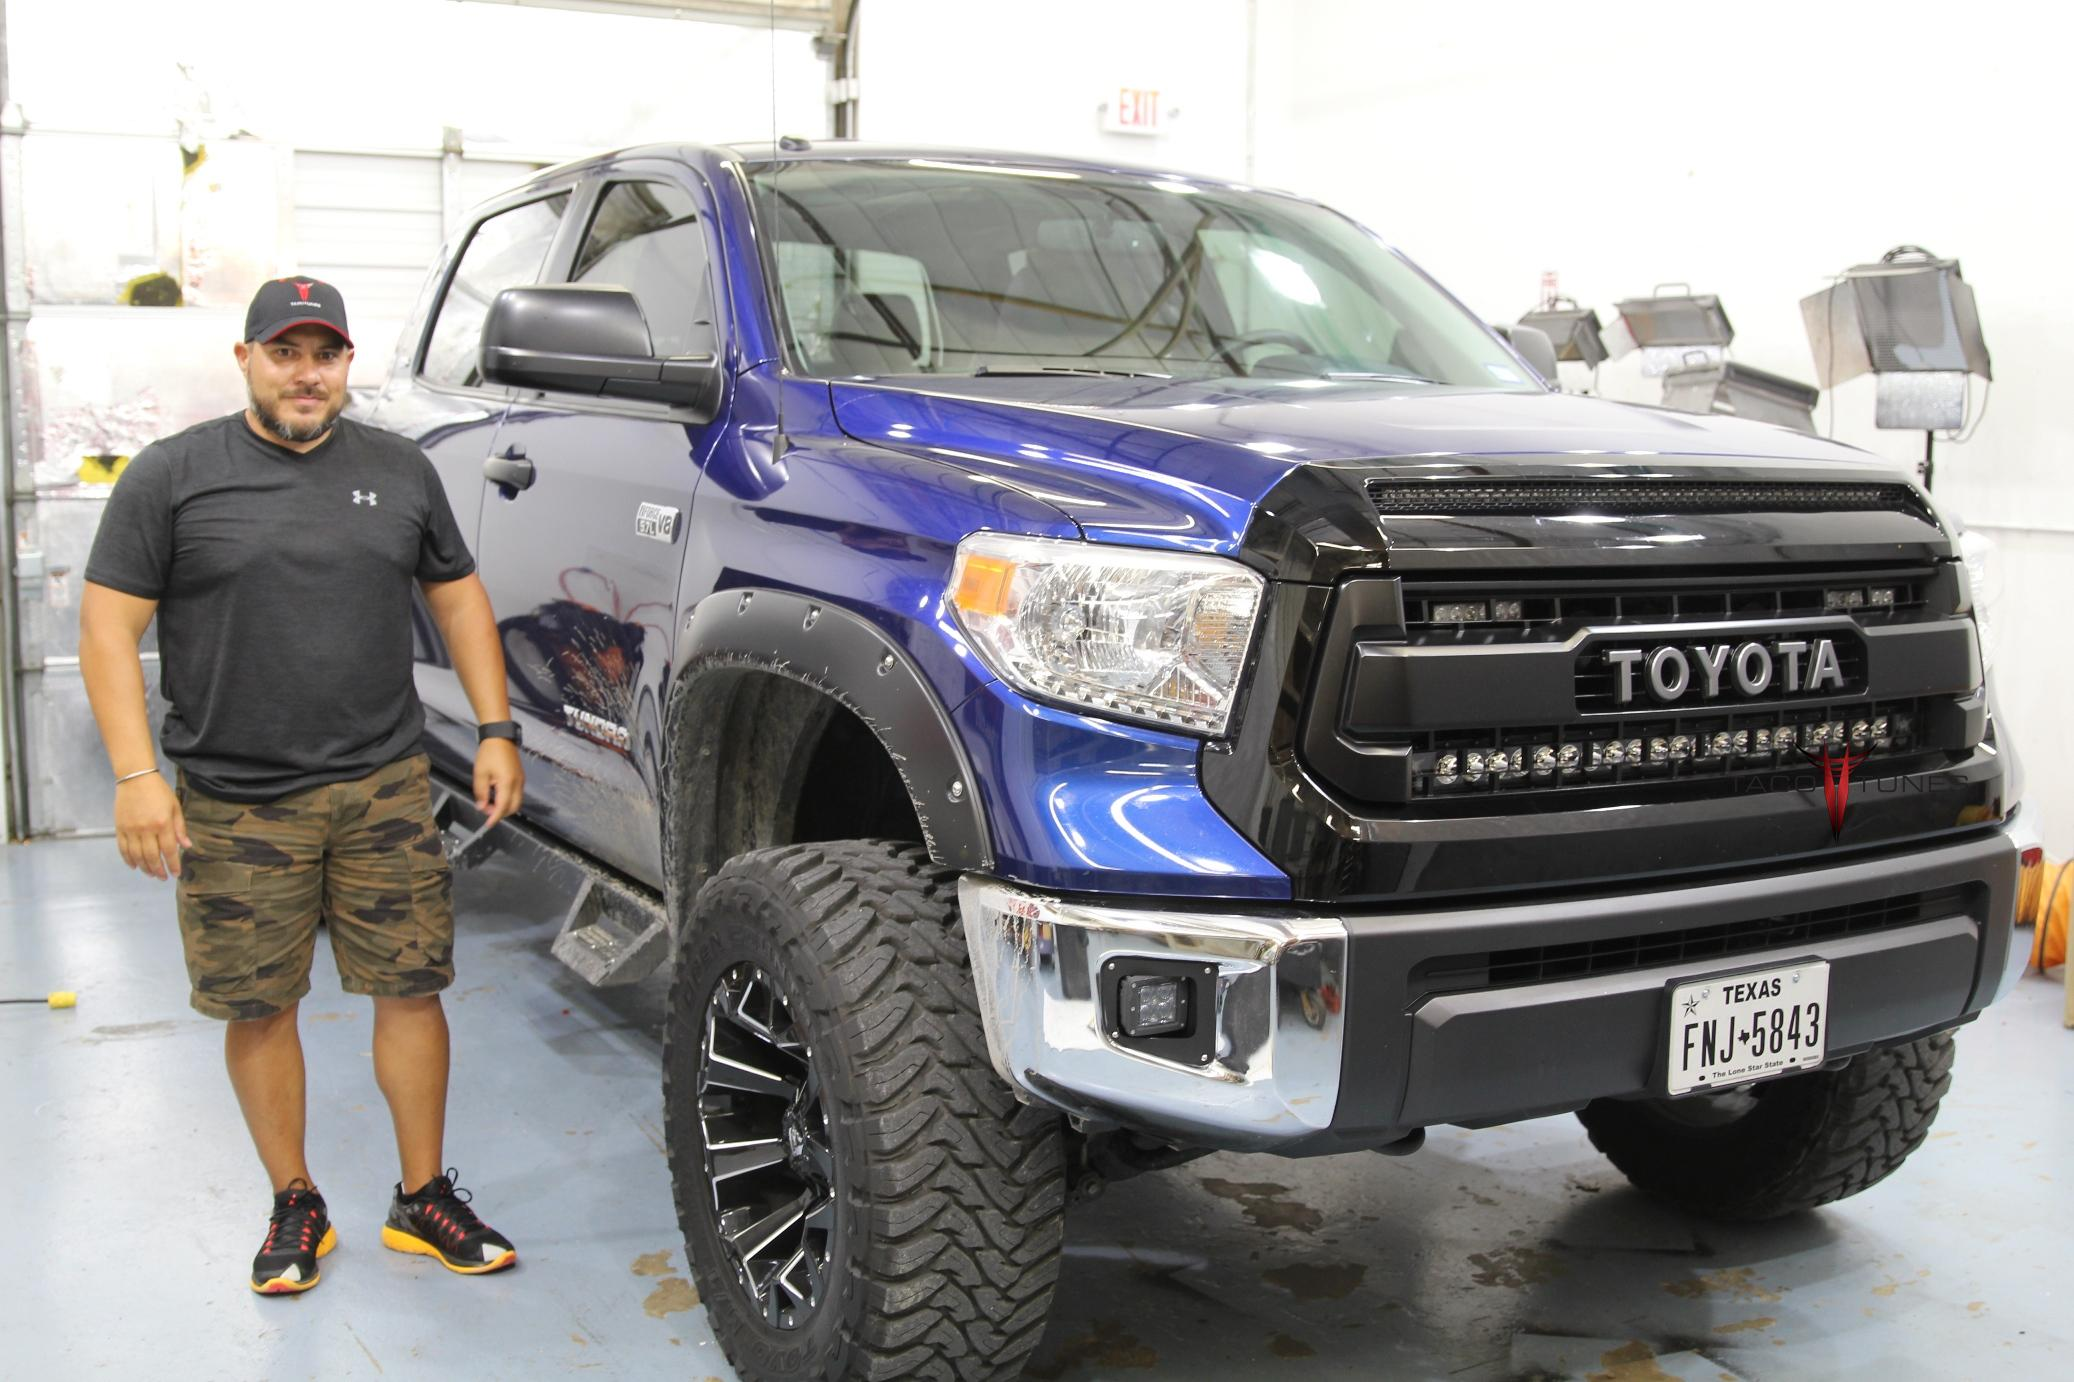 toyota tundra crewmax audio stereo system upgrade options and solutions. Black Bedroom Furniture Sets. Home Design Ideas